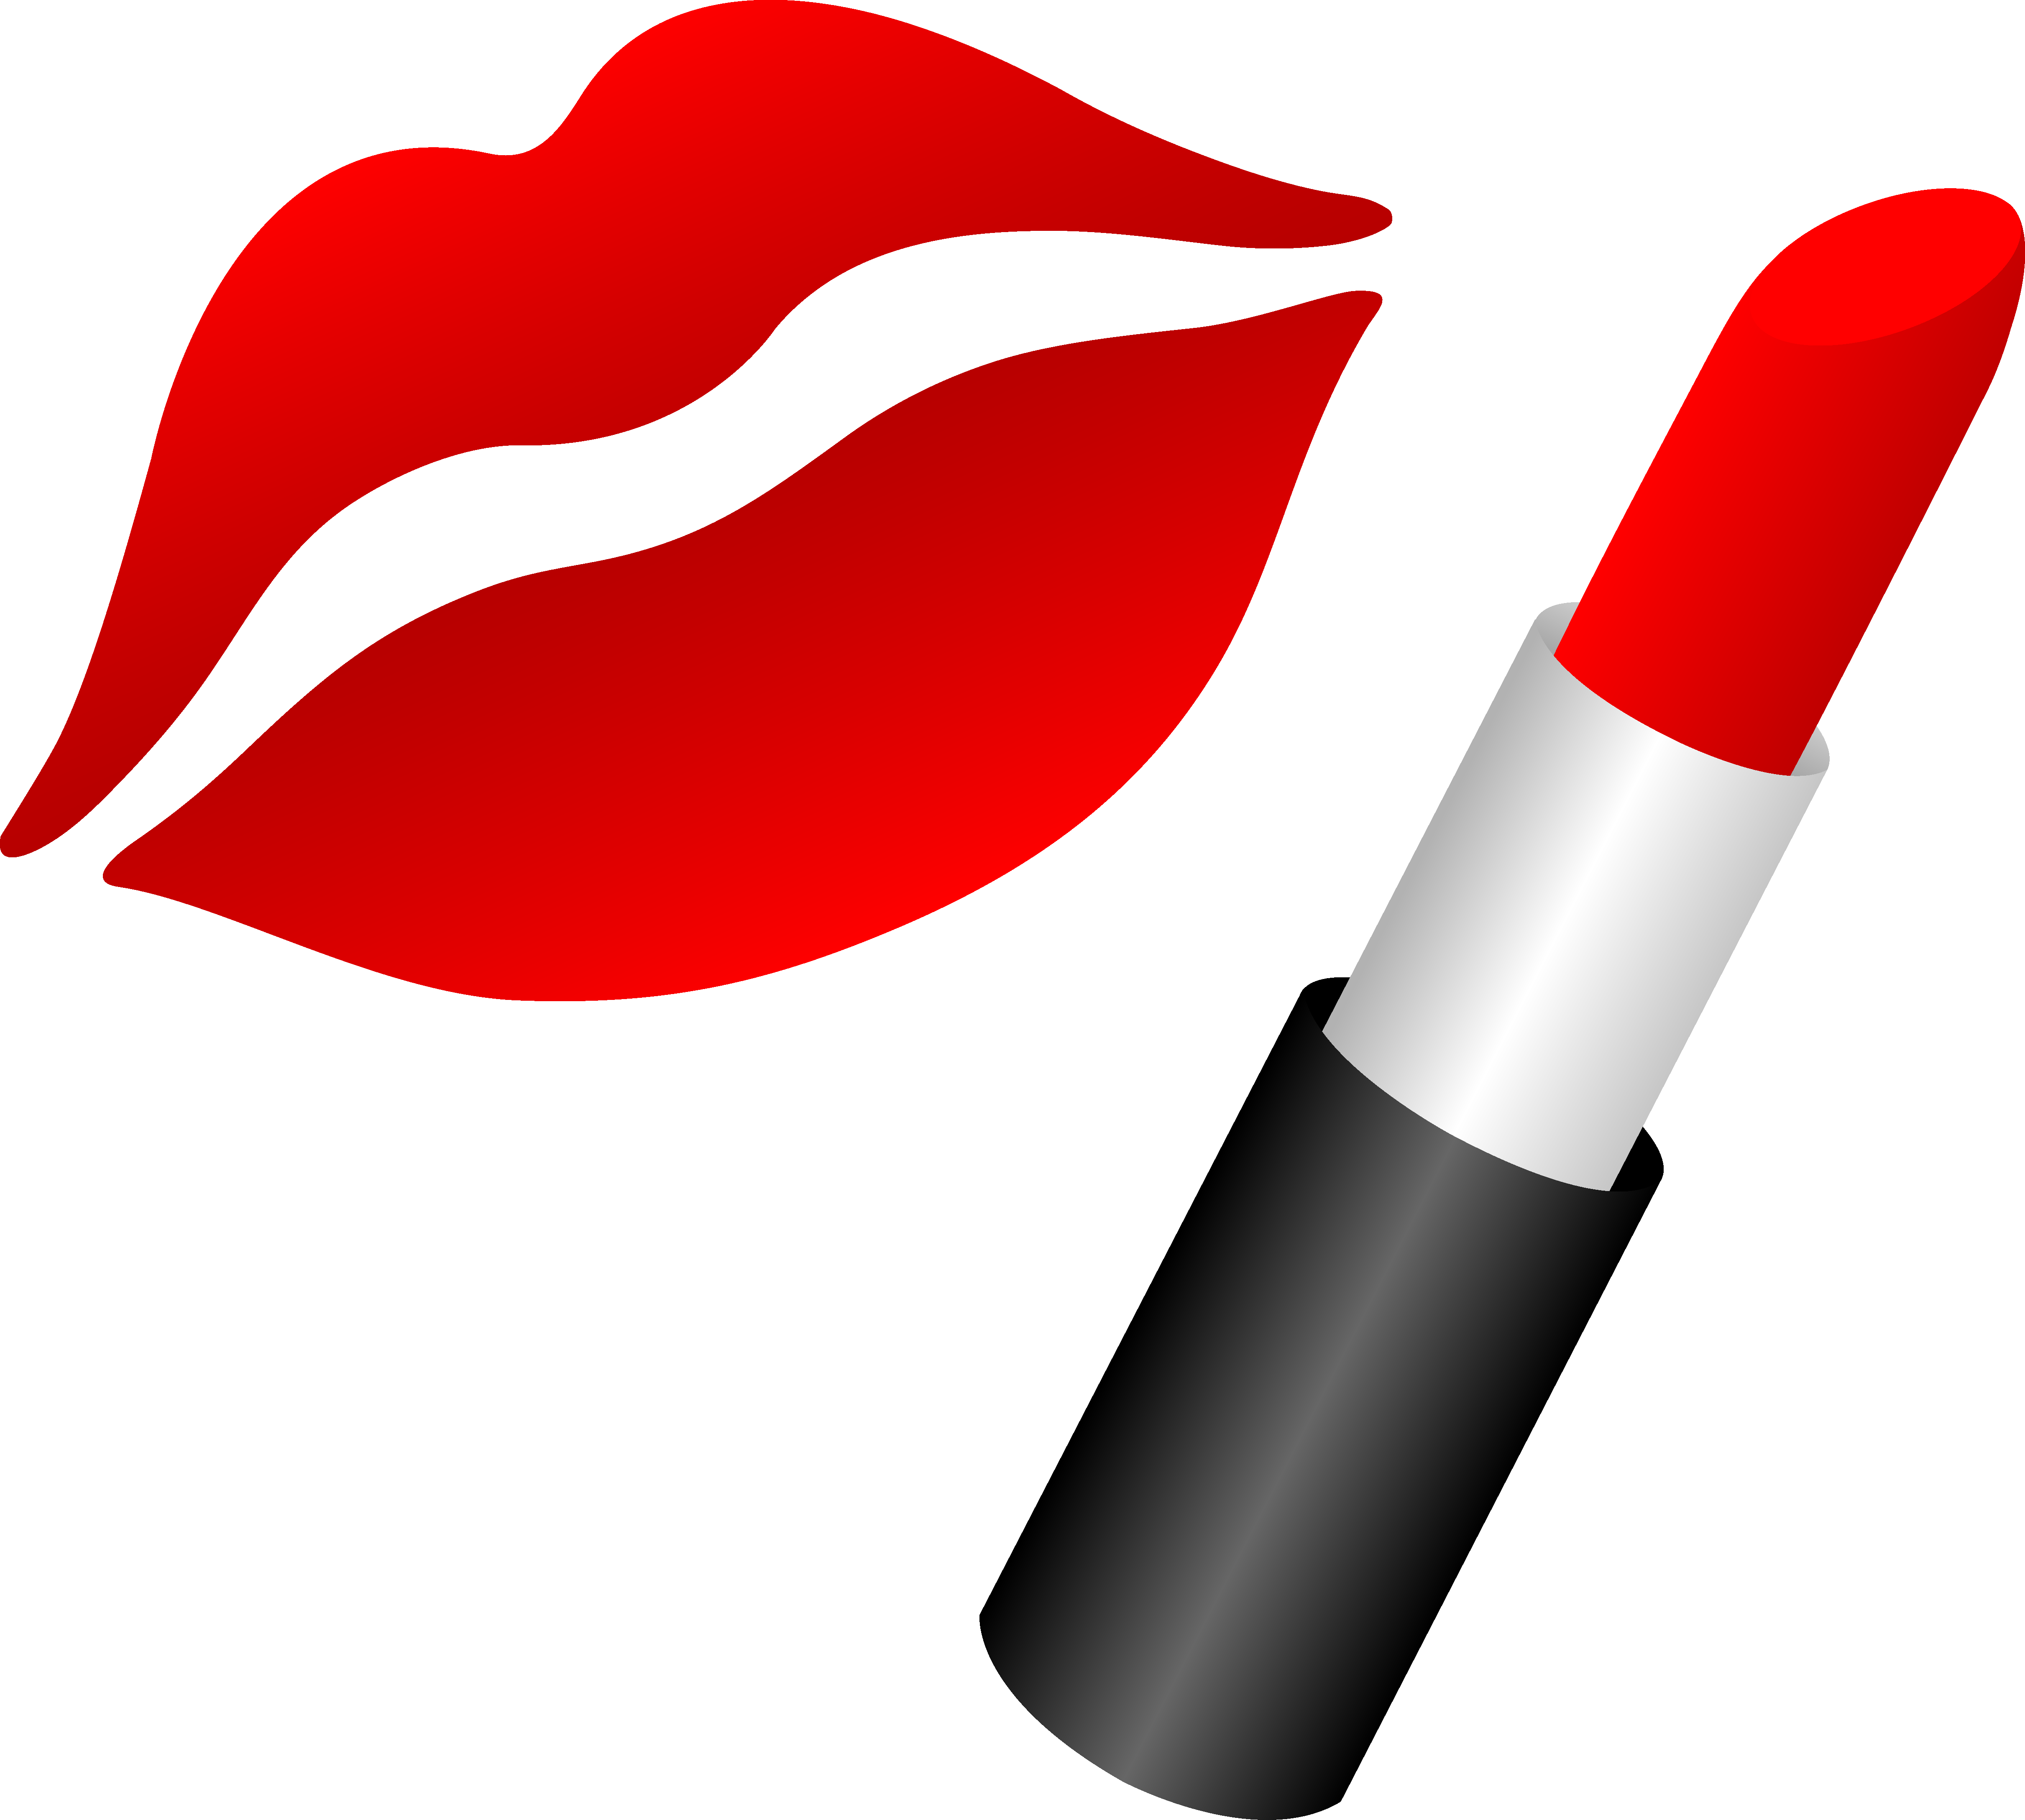 4842x4352 Lips With Red Lipstick